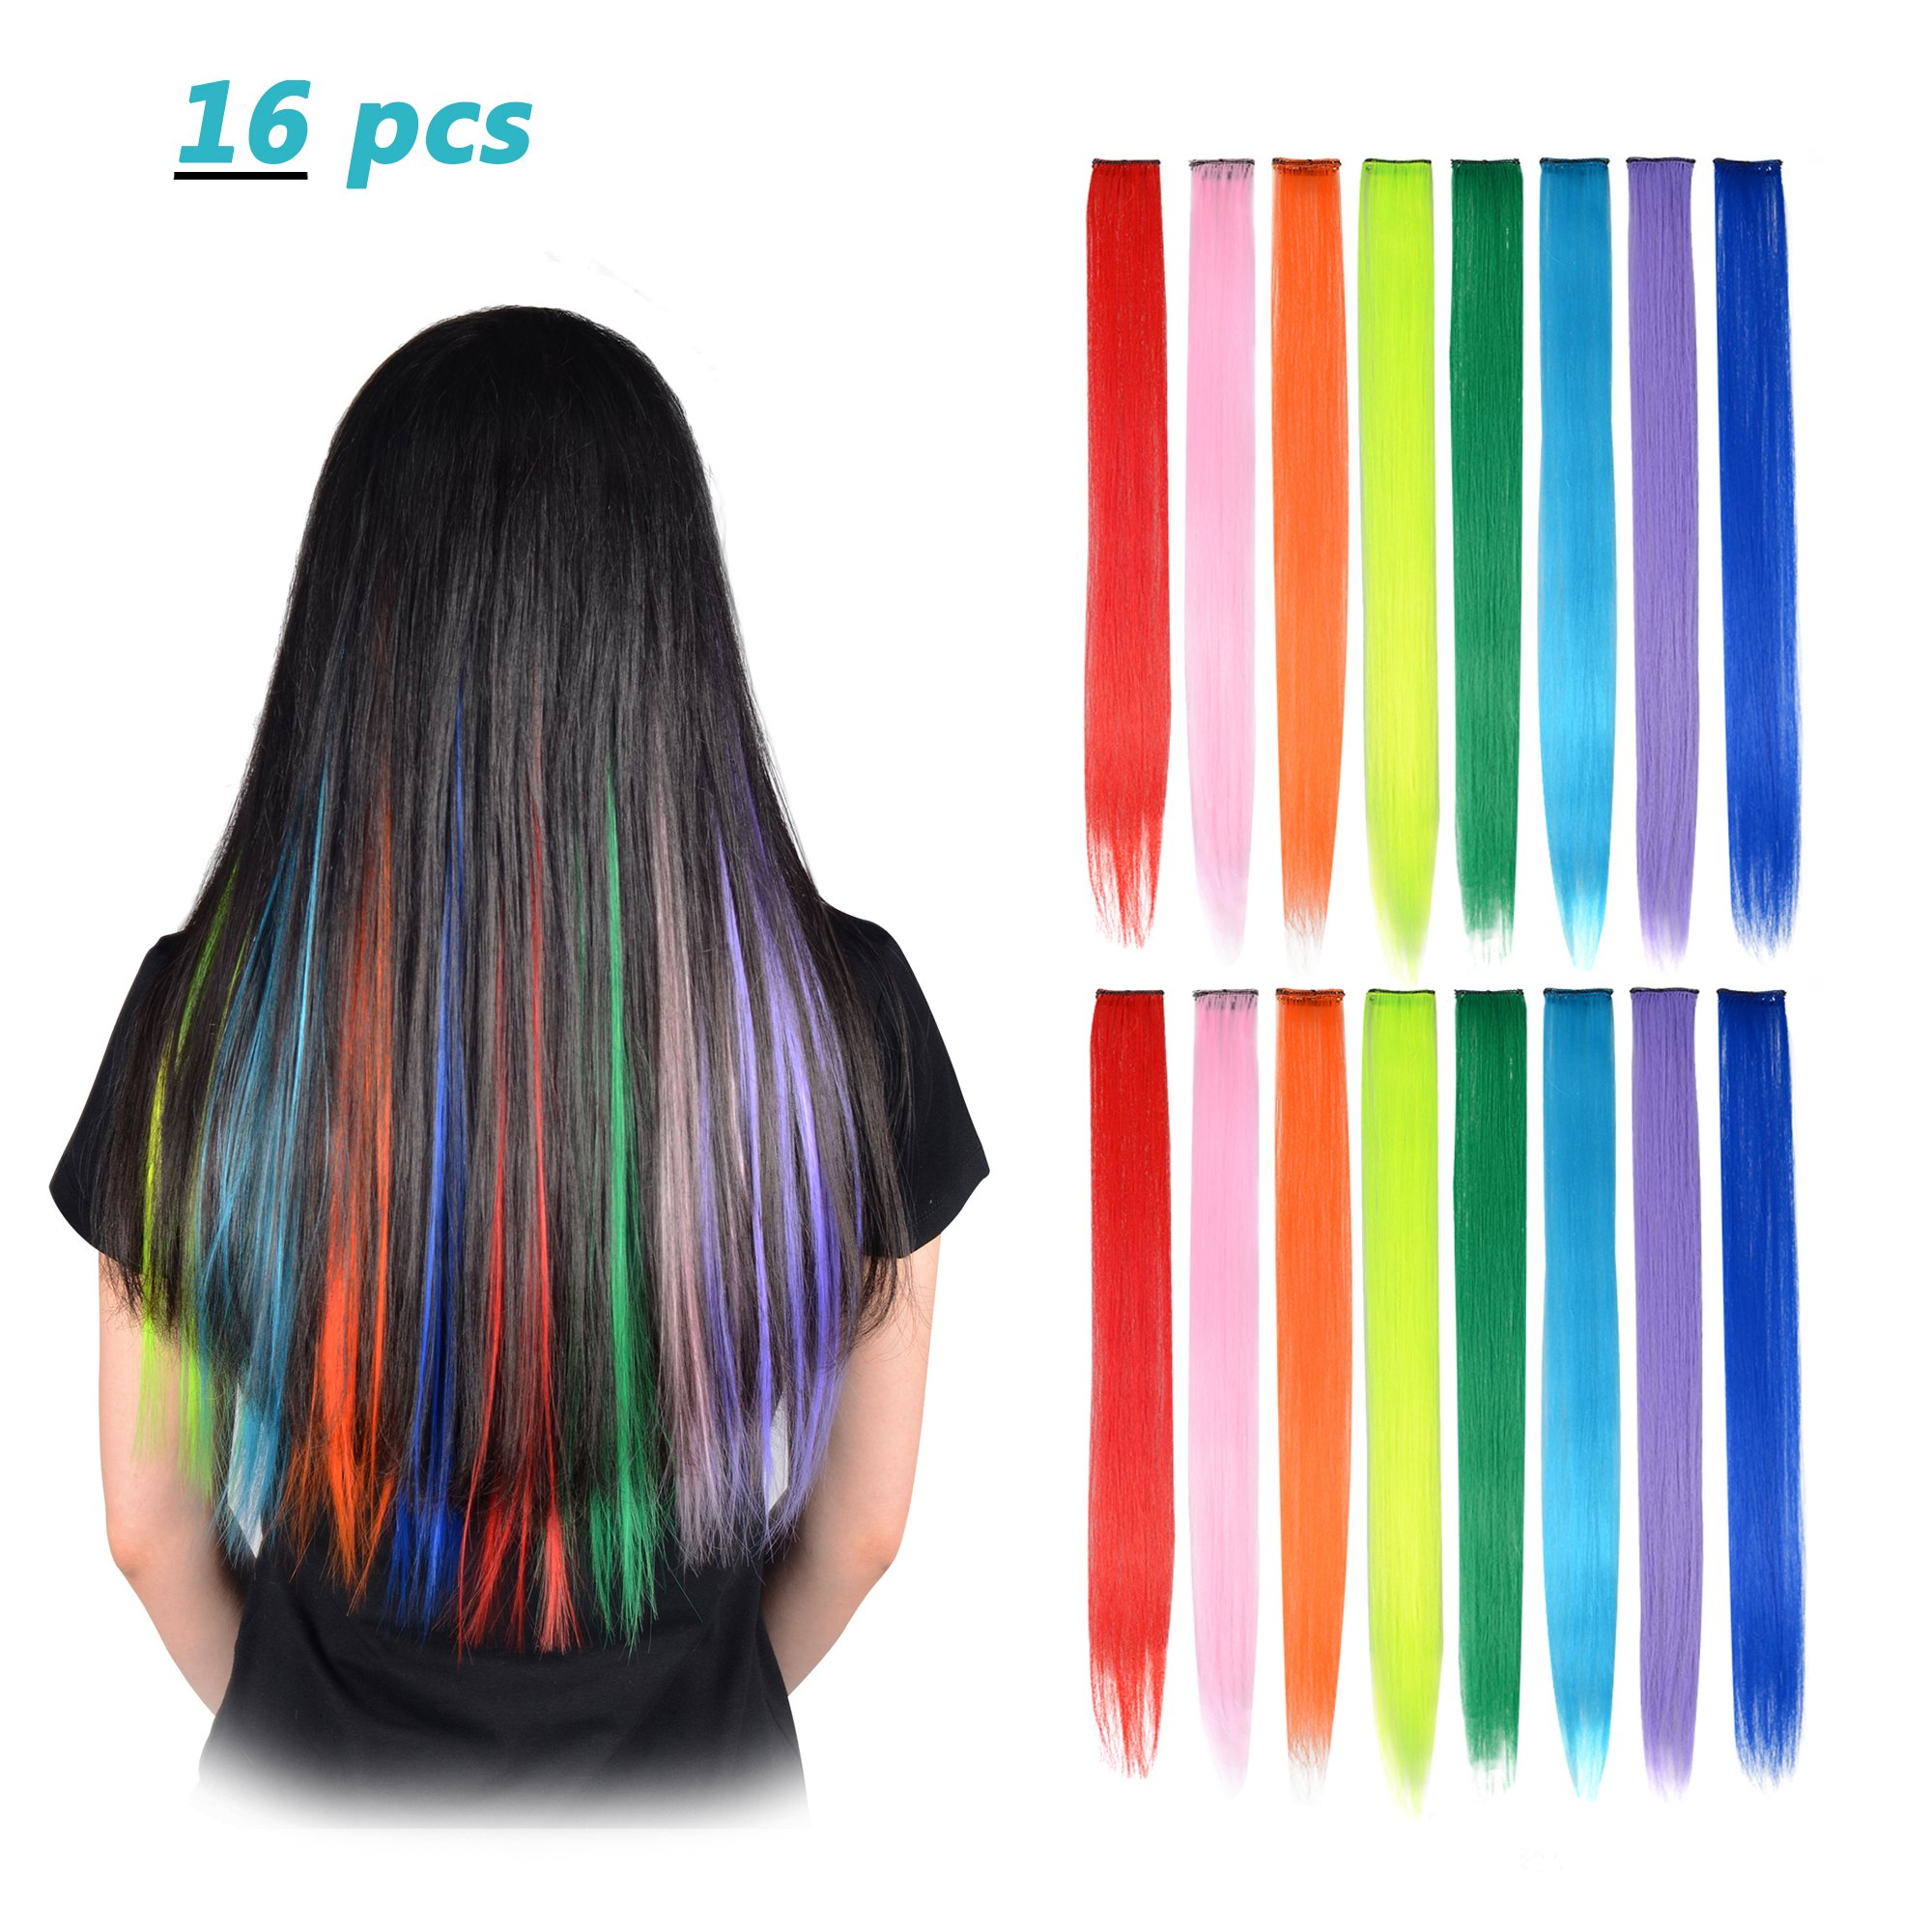 b9d3794b1 FESHFEN 20 Inch 16 Pcs 8 Colors Straight Clip in Hair Extensions Hair  Accessories Hair Pieces